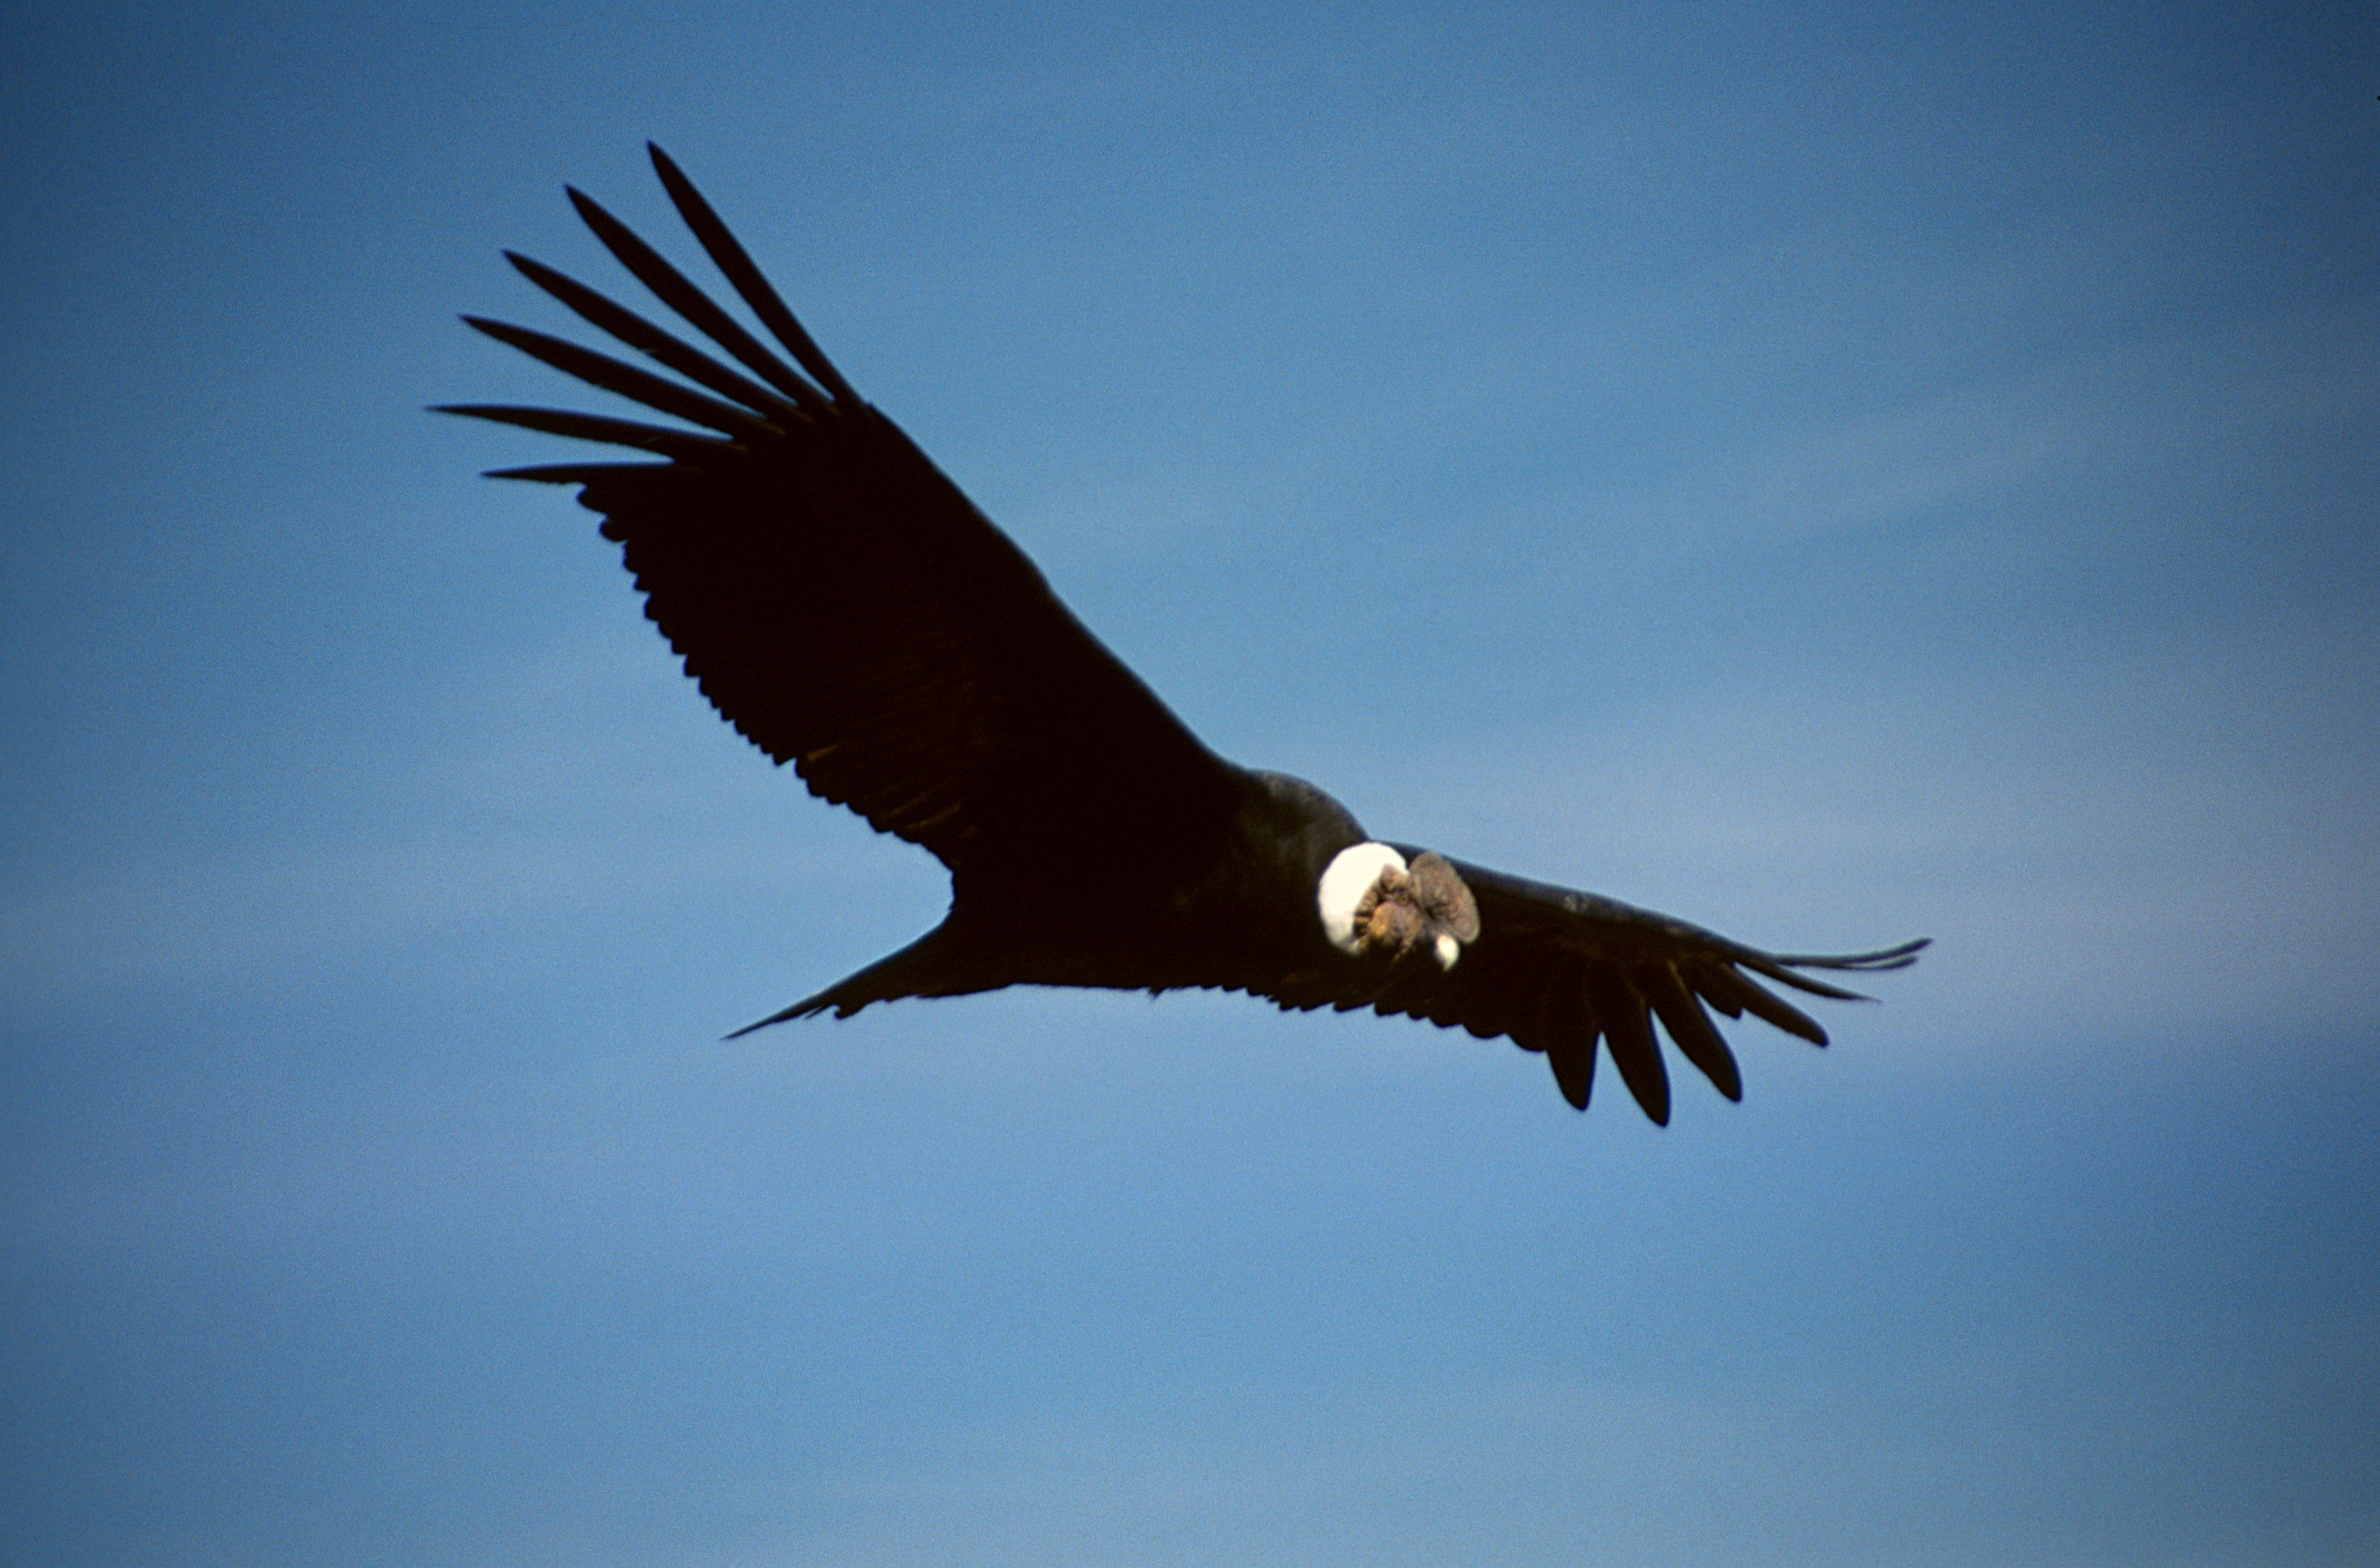 https://i1.wp.com/upload.wikimedia.org/wikipedia/commons/3/33/Colca-condor-c03.jpg